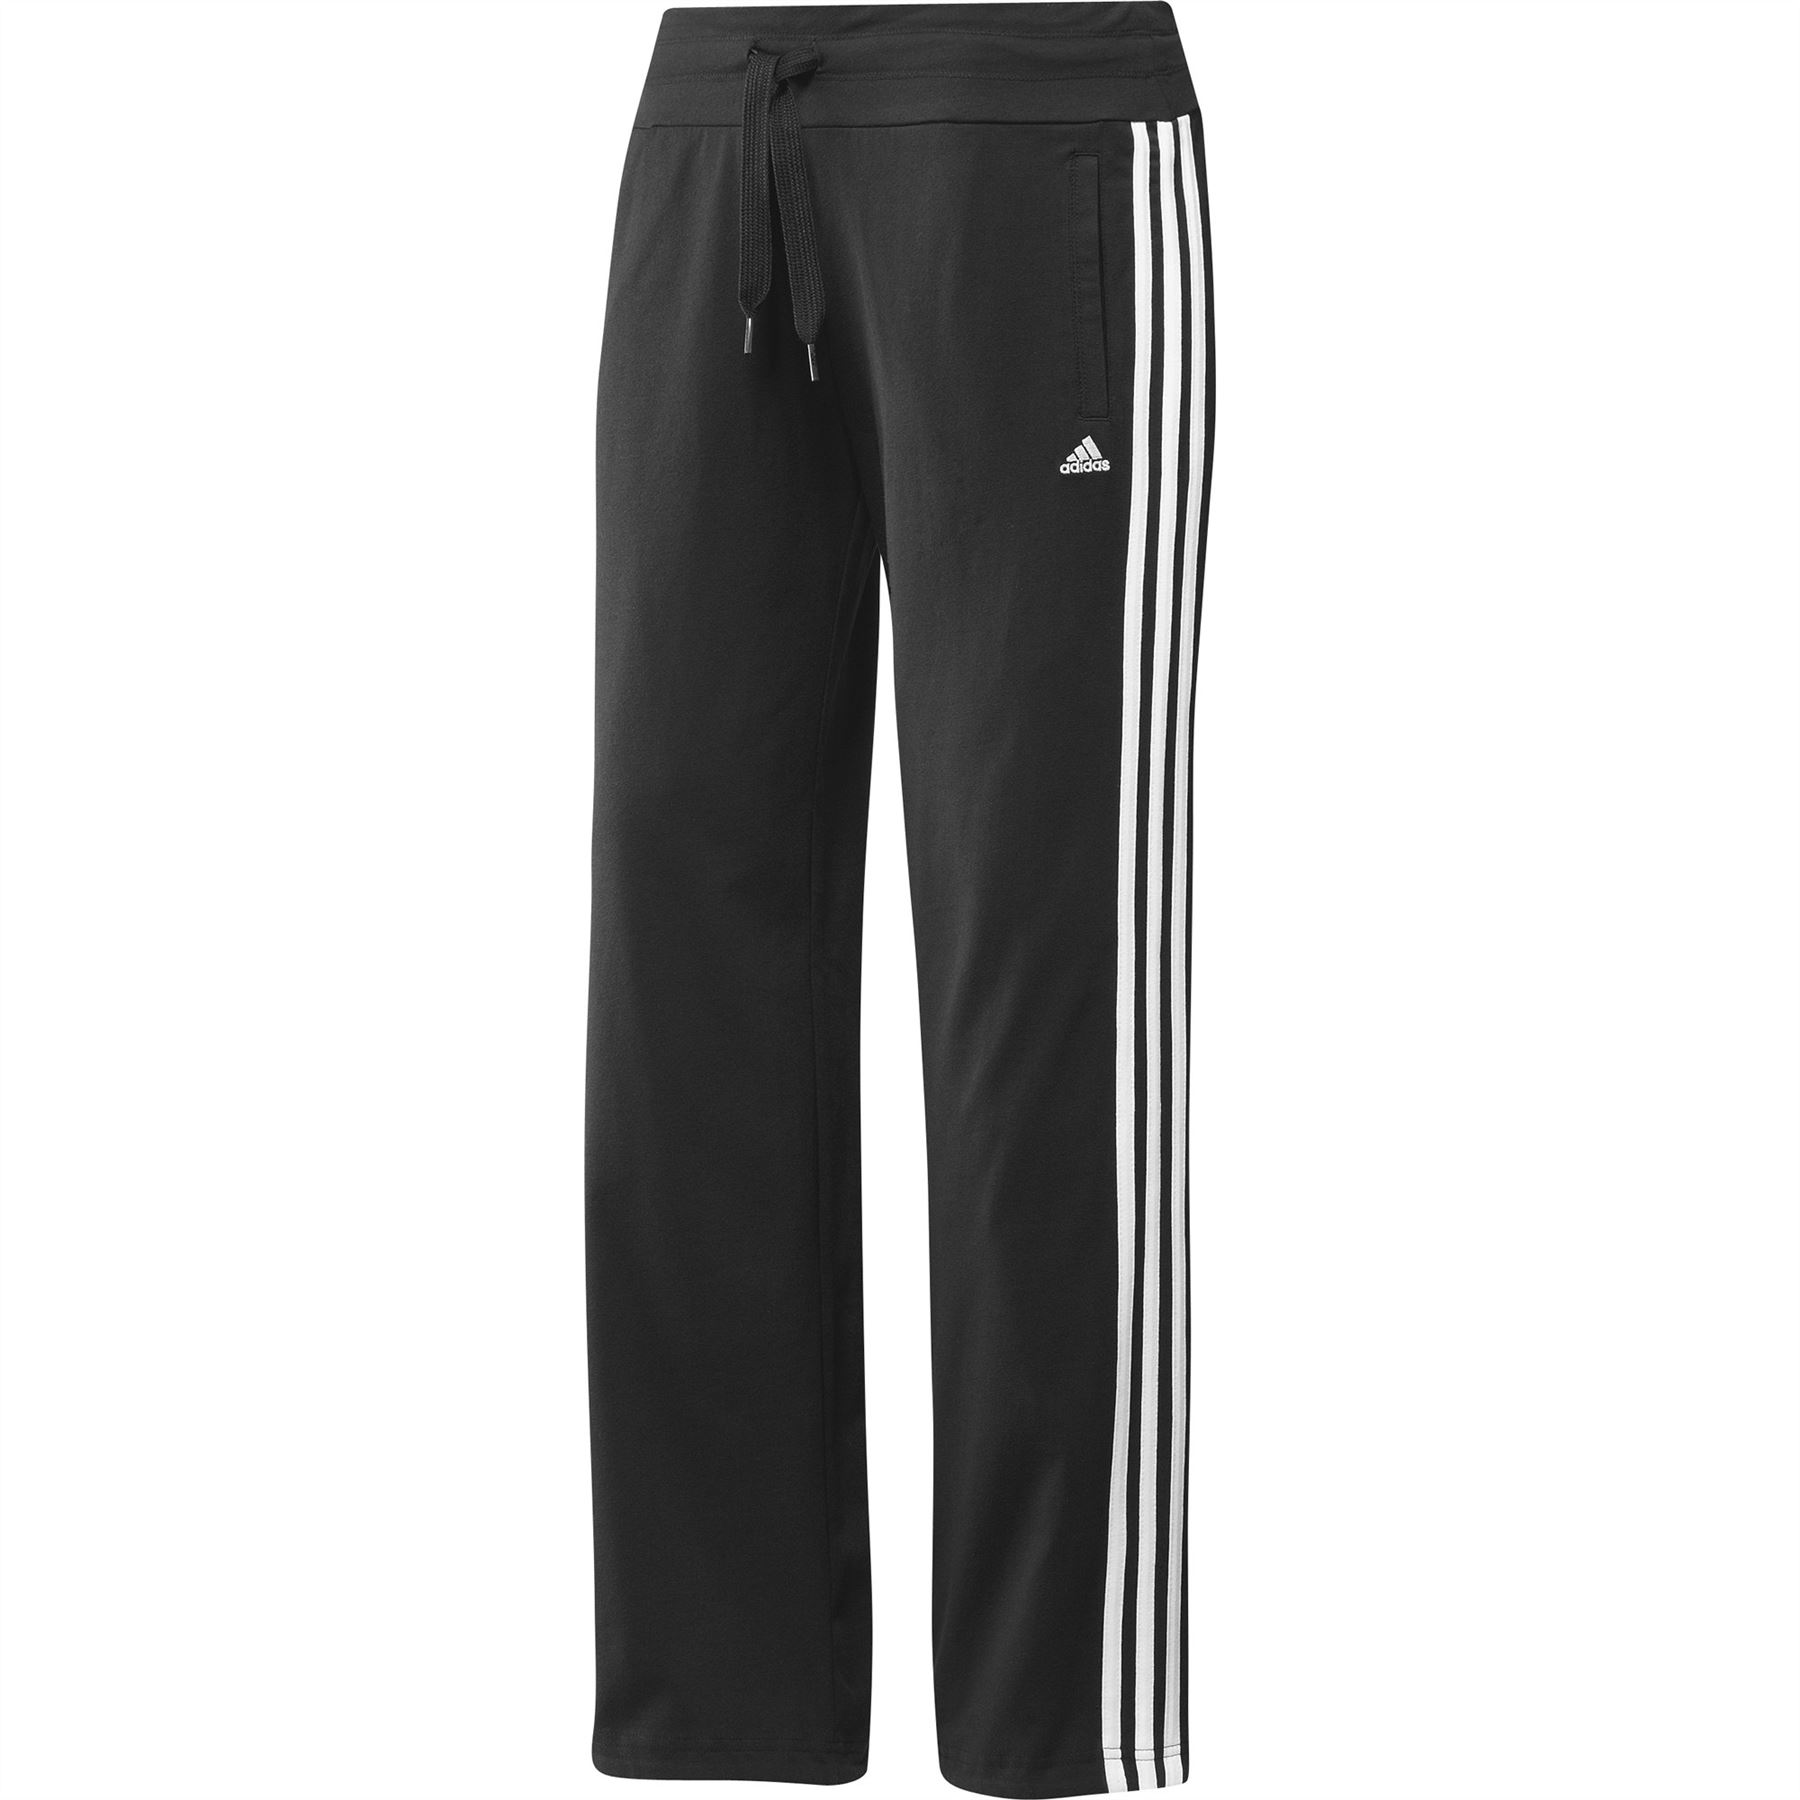 ... adidas Essentials 3 Stripe Knit Sweat Pants Black/White Womens Track  Bottoms ...